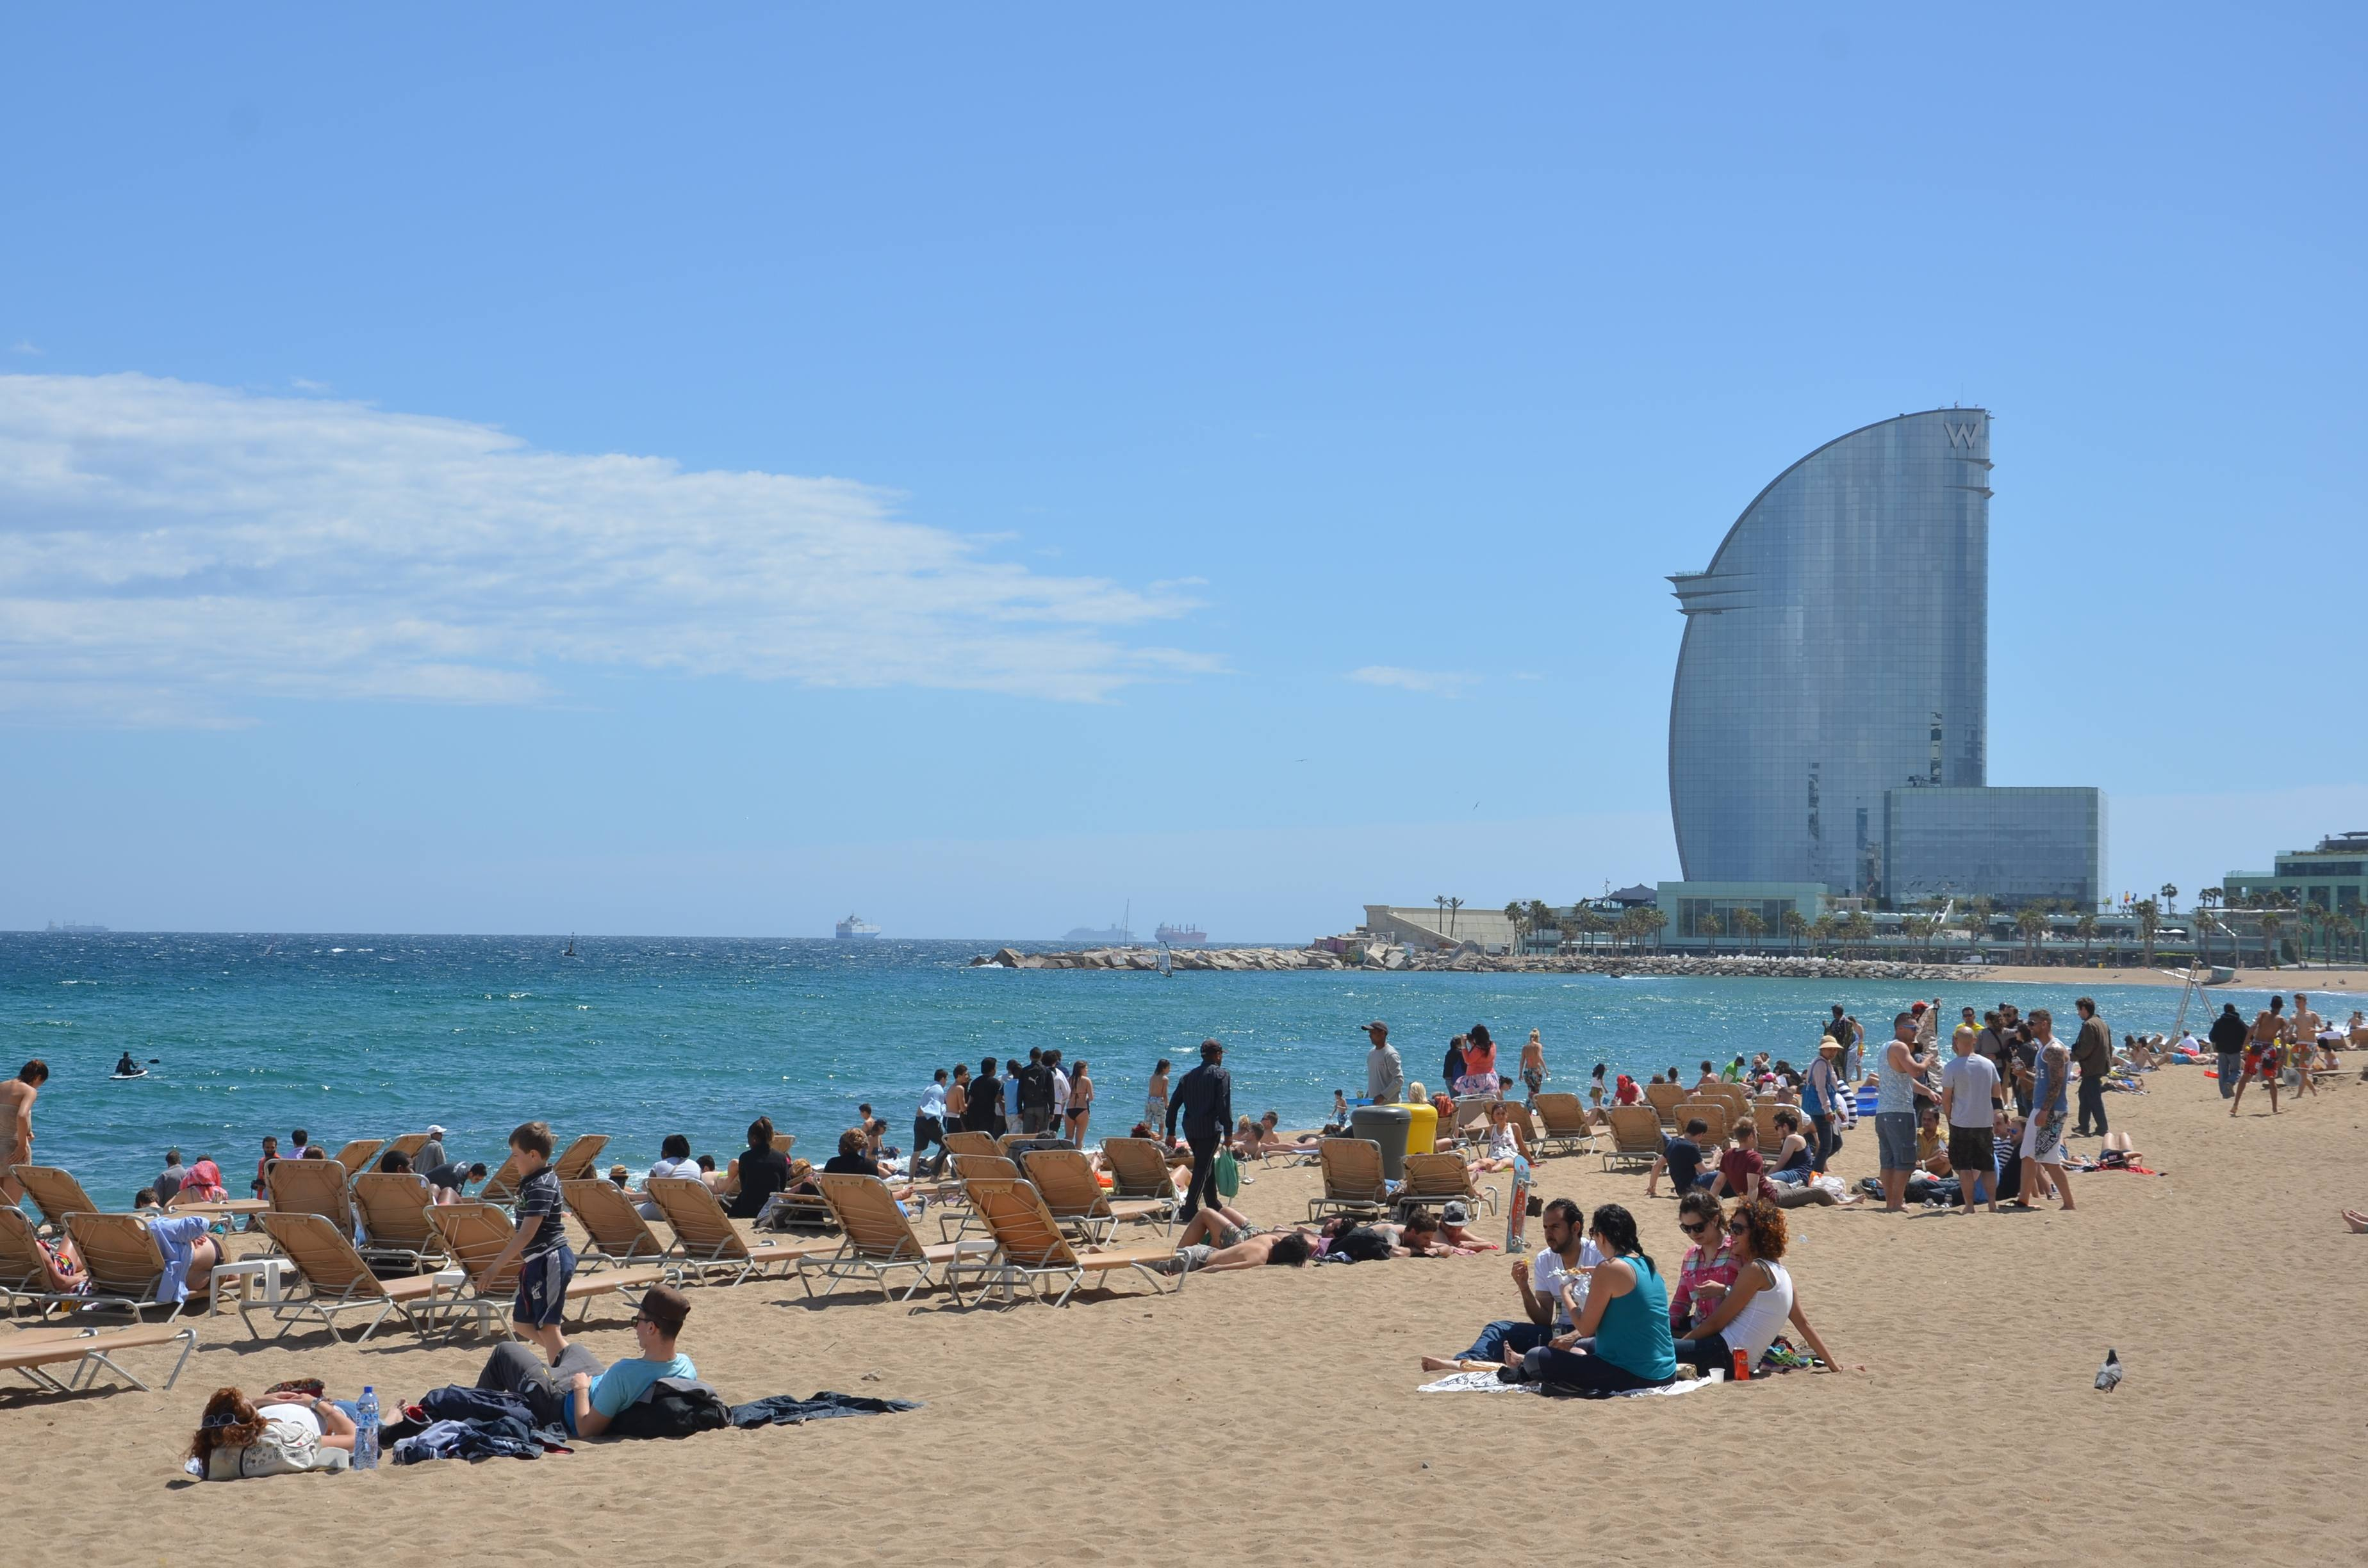 One of the top 10 things to do in Barcelona: hit the beach!